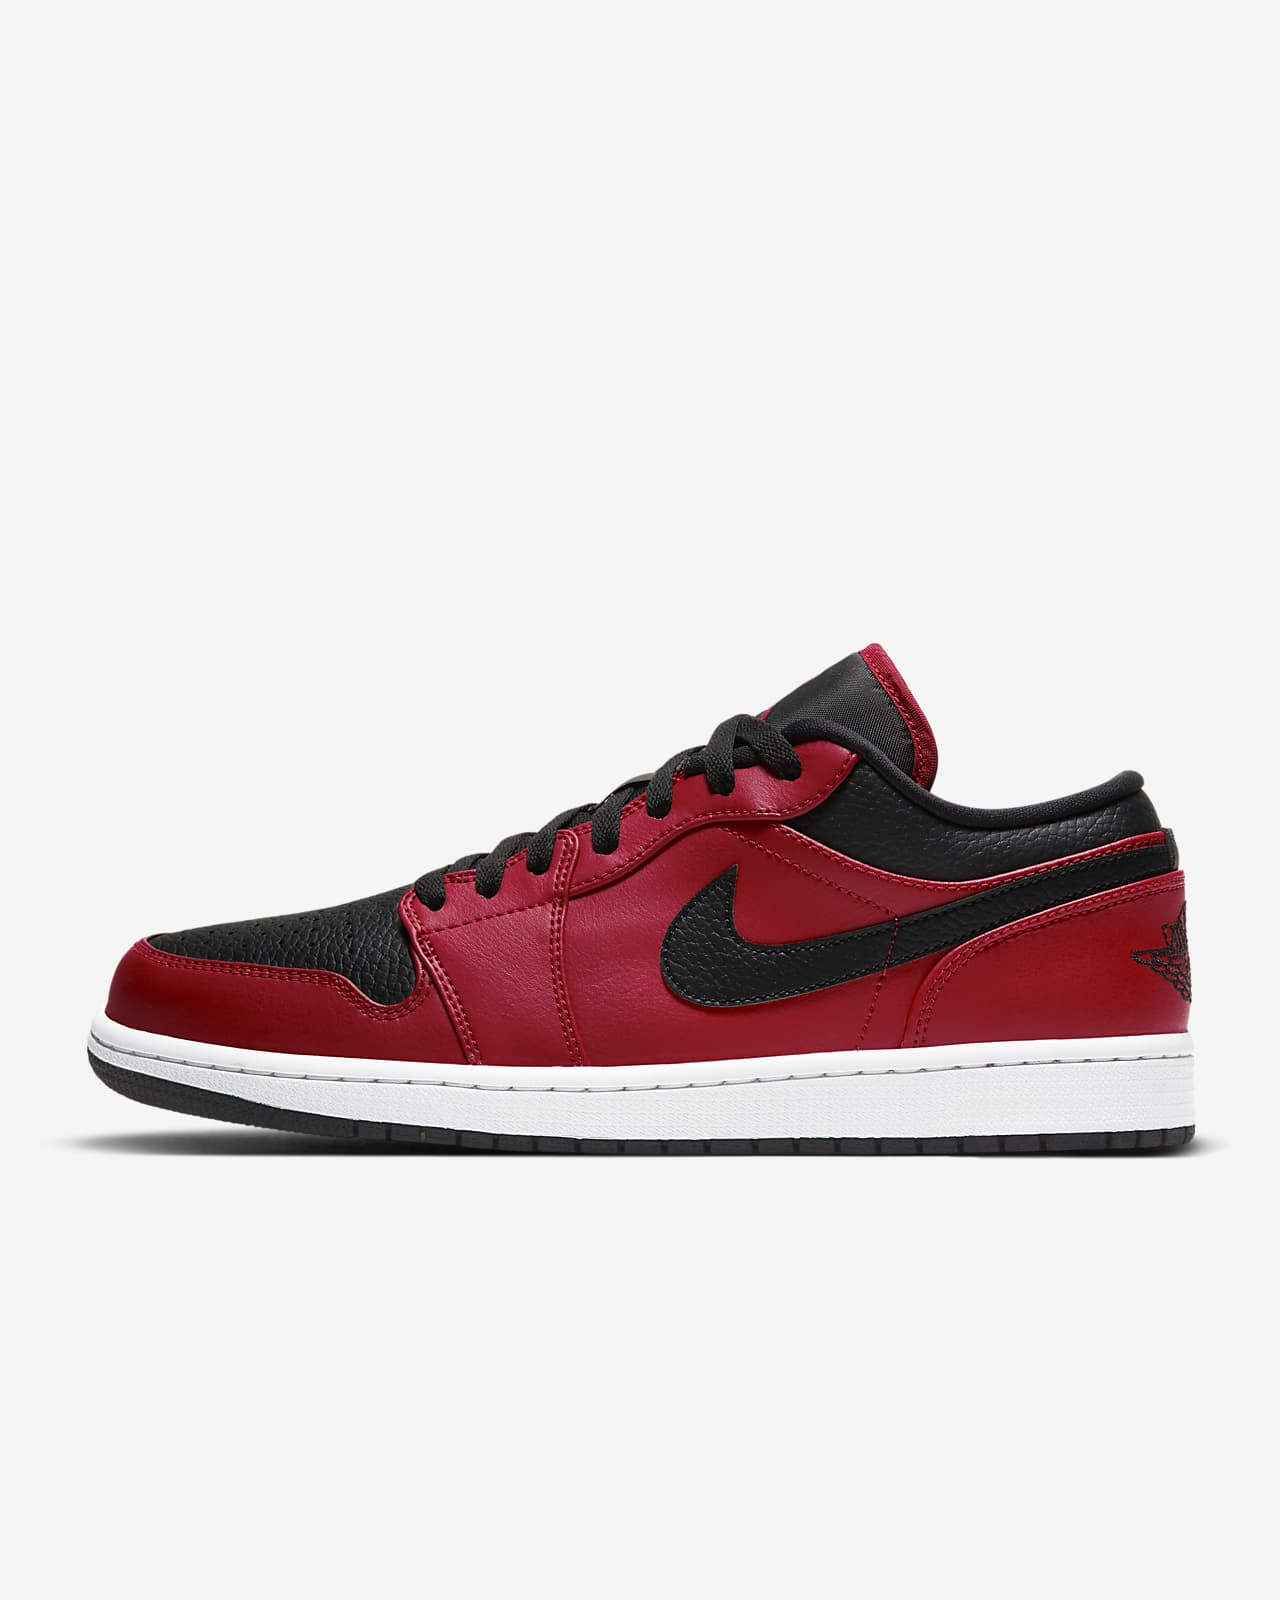 Air Jordan 1 Low-sko